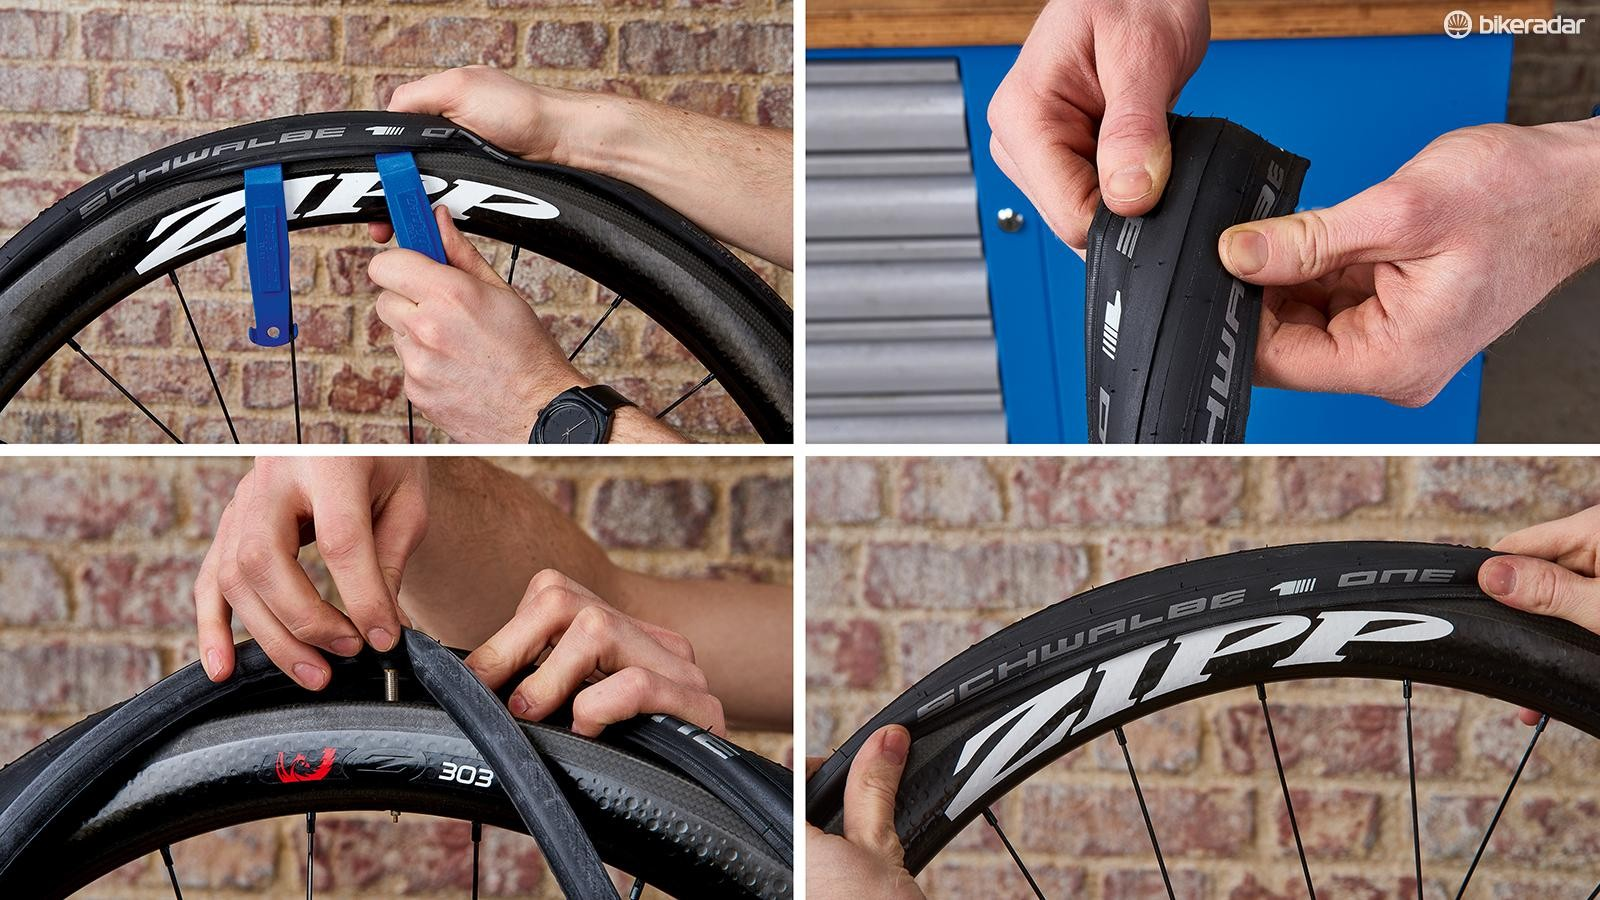 Perhaps the most essential of all bike fixes, replacing an inner tube after a puncture